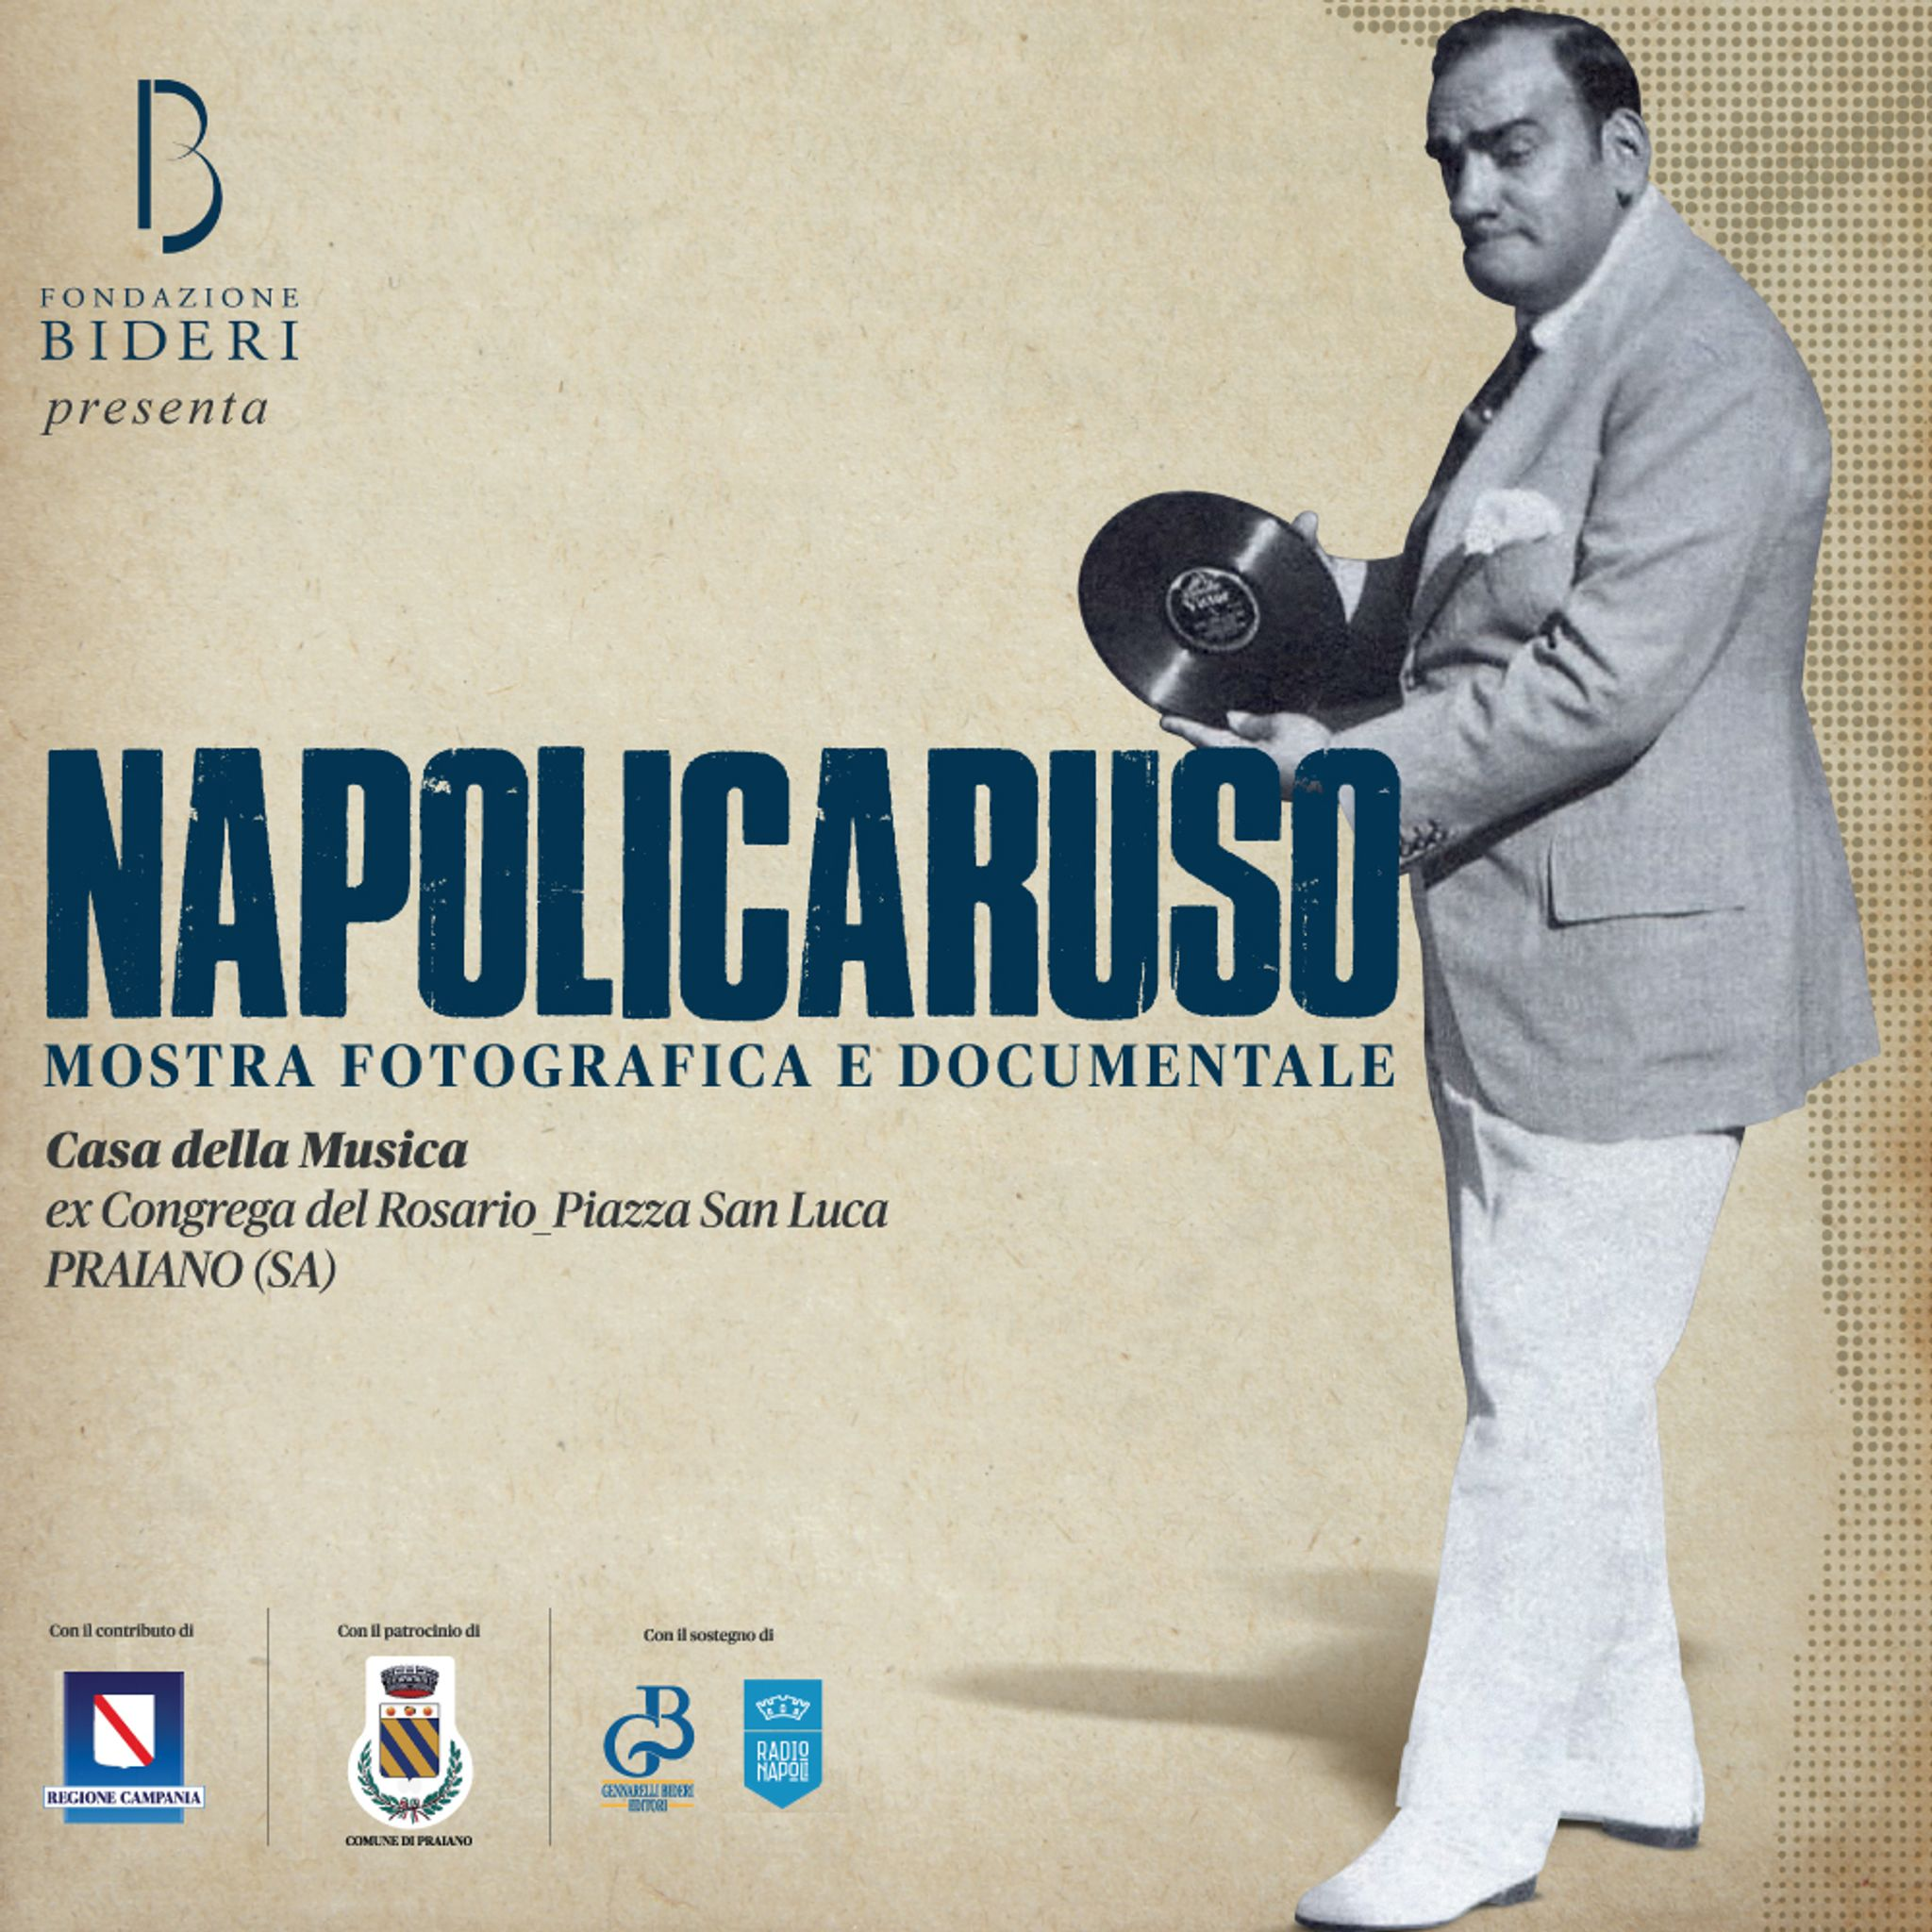 NapoliCaruso, photographic and documentary exhibition